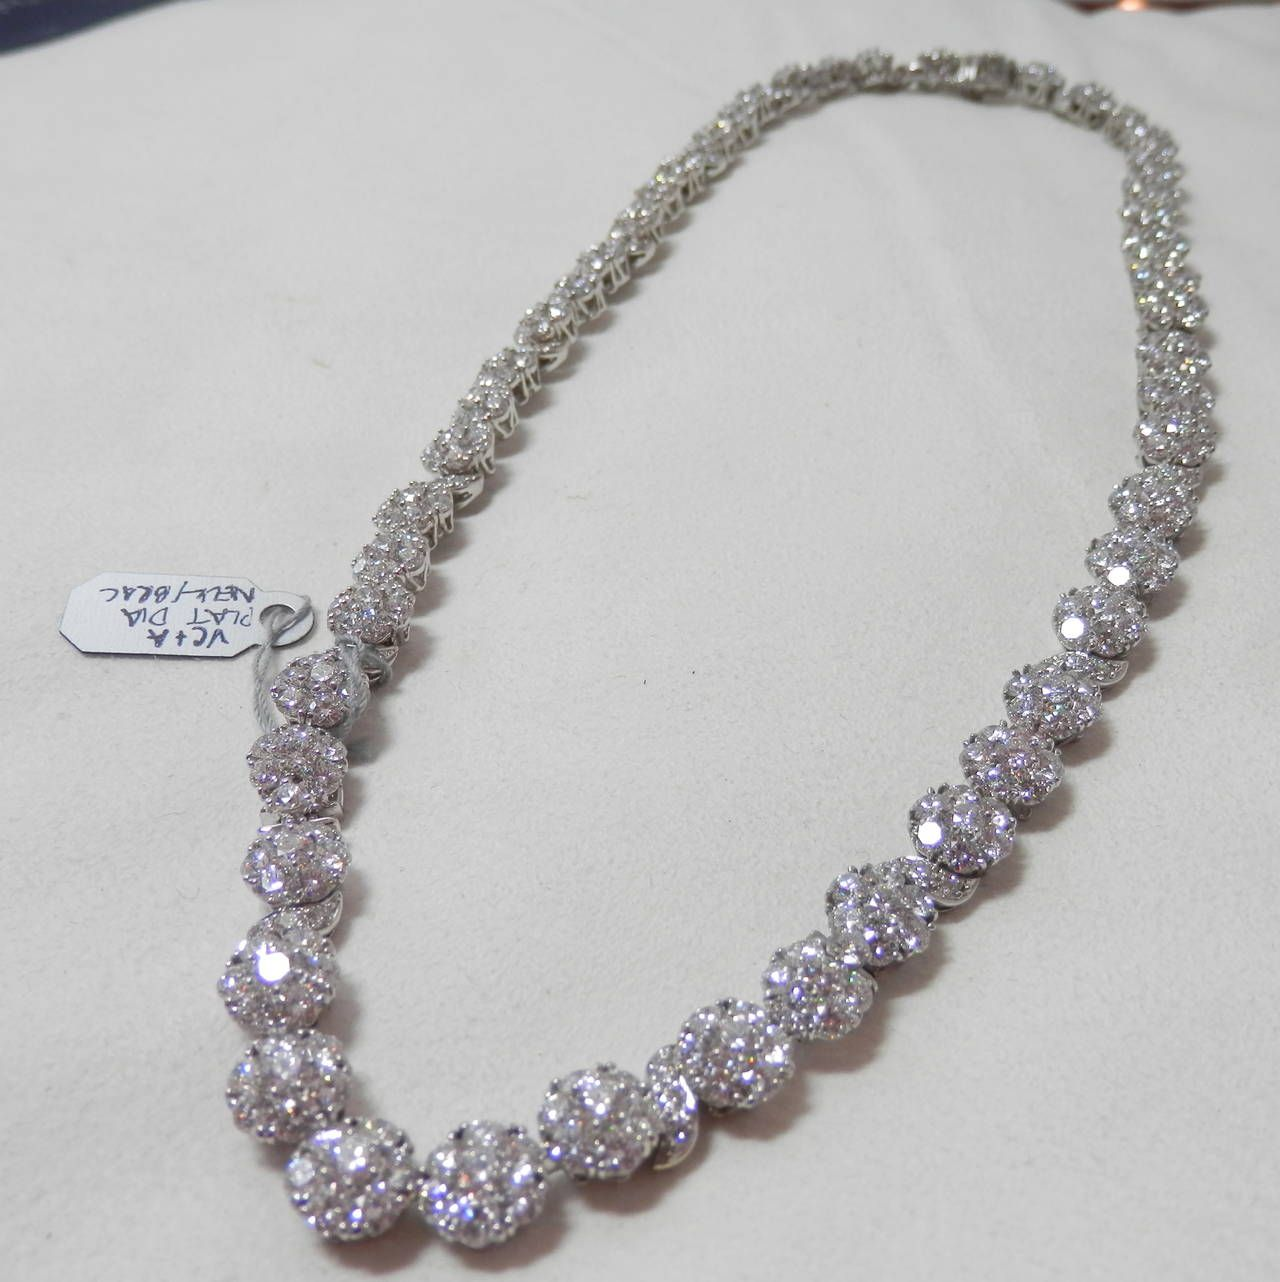 Van cleef and arpels diamond gold cluster necklace converts to